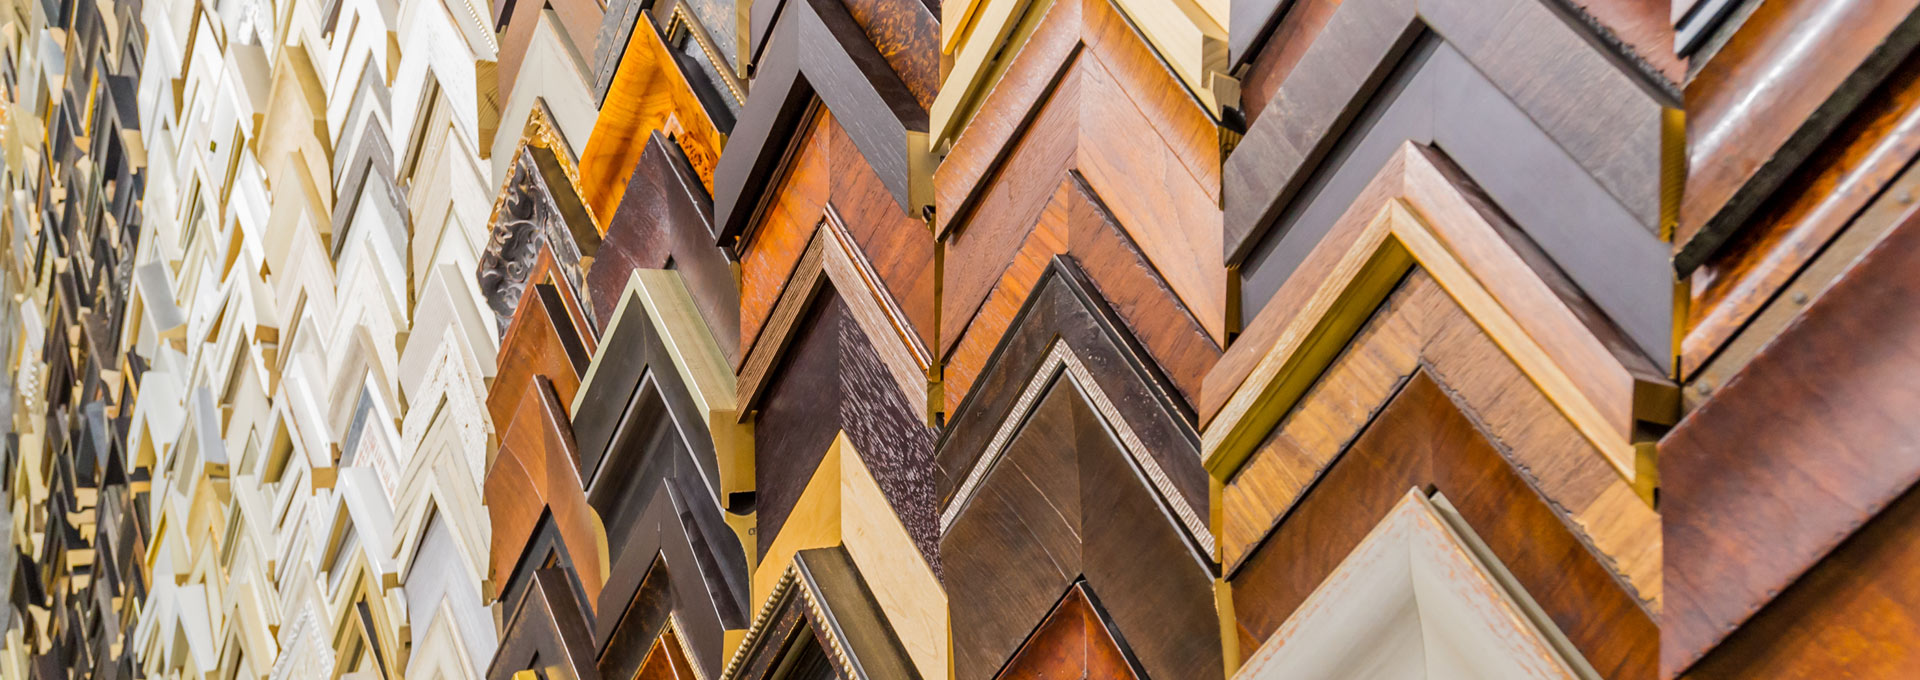 custom framing services background | Aldecor Custom Framing & Gallery - Naples, Florida